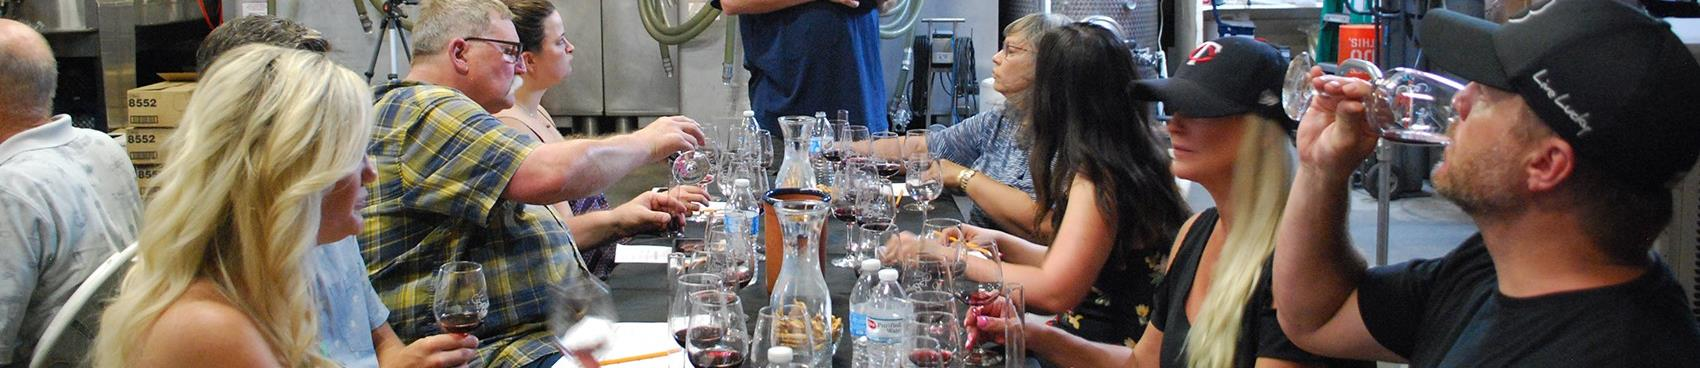 Purchase Tickets to Zinfandel Vineyard Tour & Clonal Tasting at Crystal Basin Cellars on CellarPass